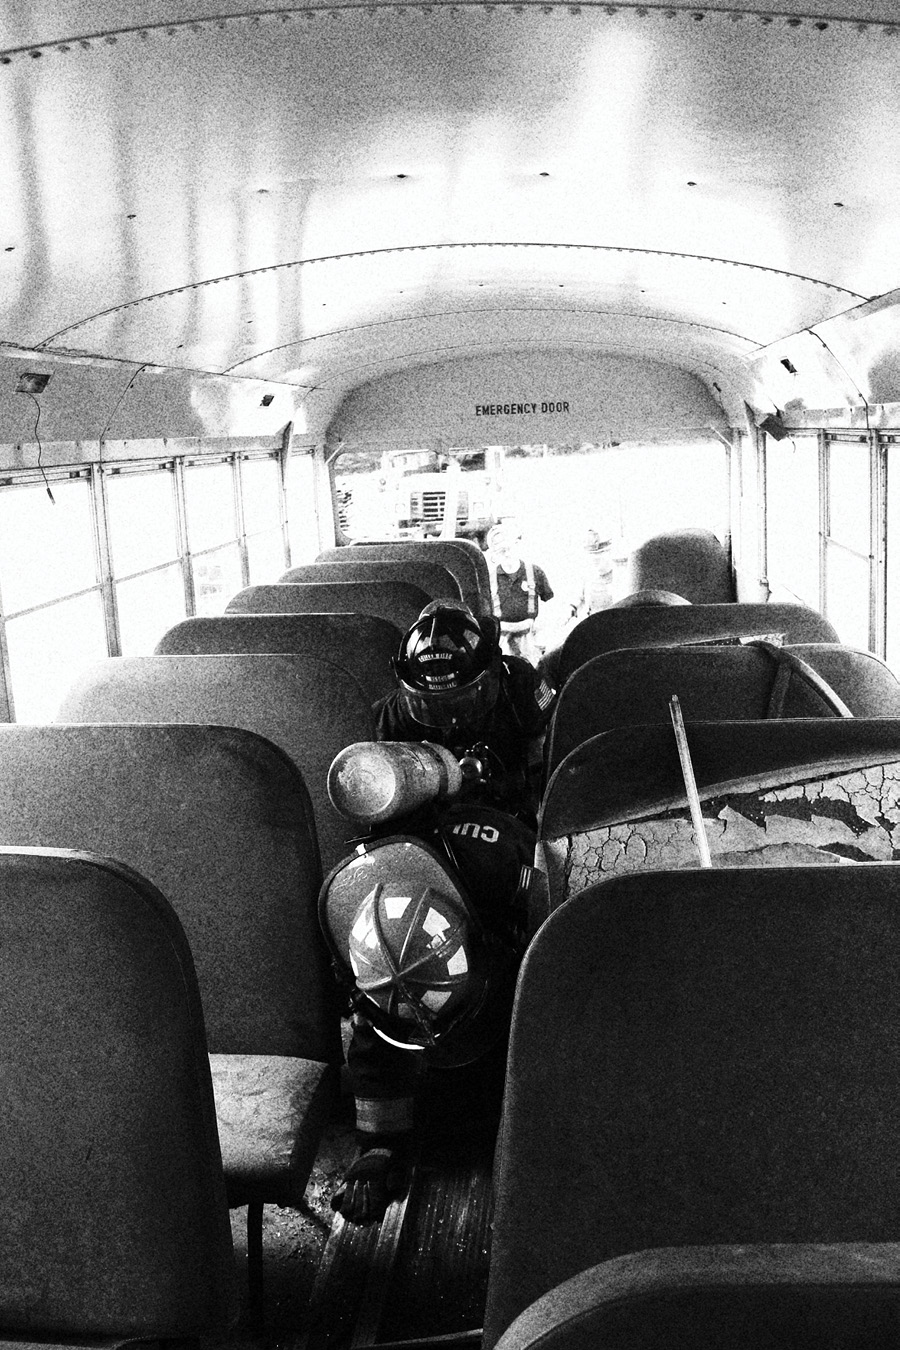 These firefighters are participating in a Brothers of the Boot F.O.O.L.S. training event in which they practiced making rescues from a bus under realistic conditions and in full personal protective equipment and self-contained breathing apparatus.